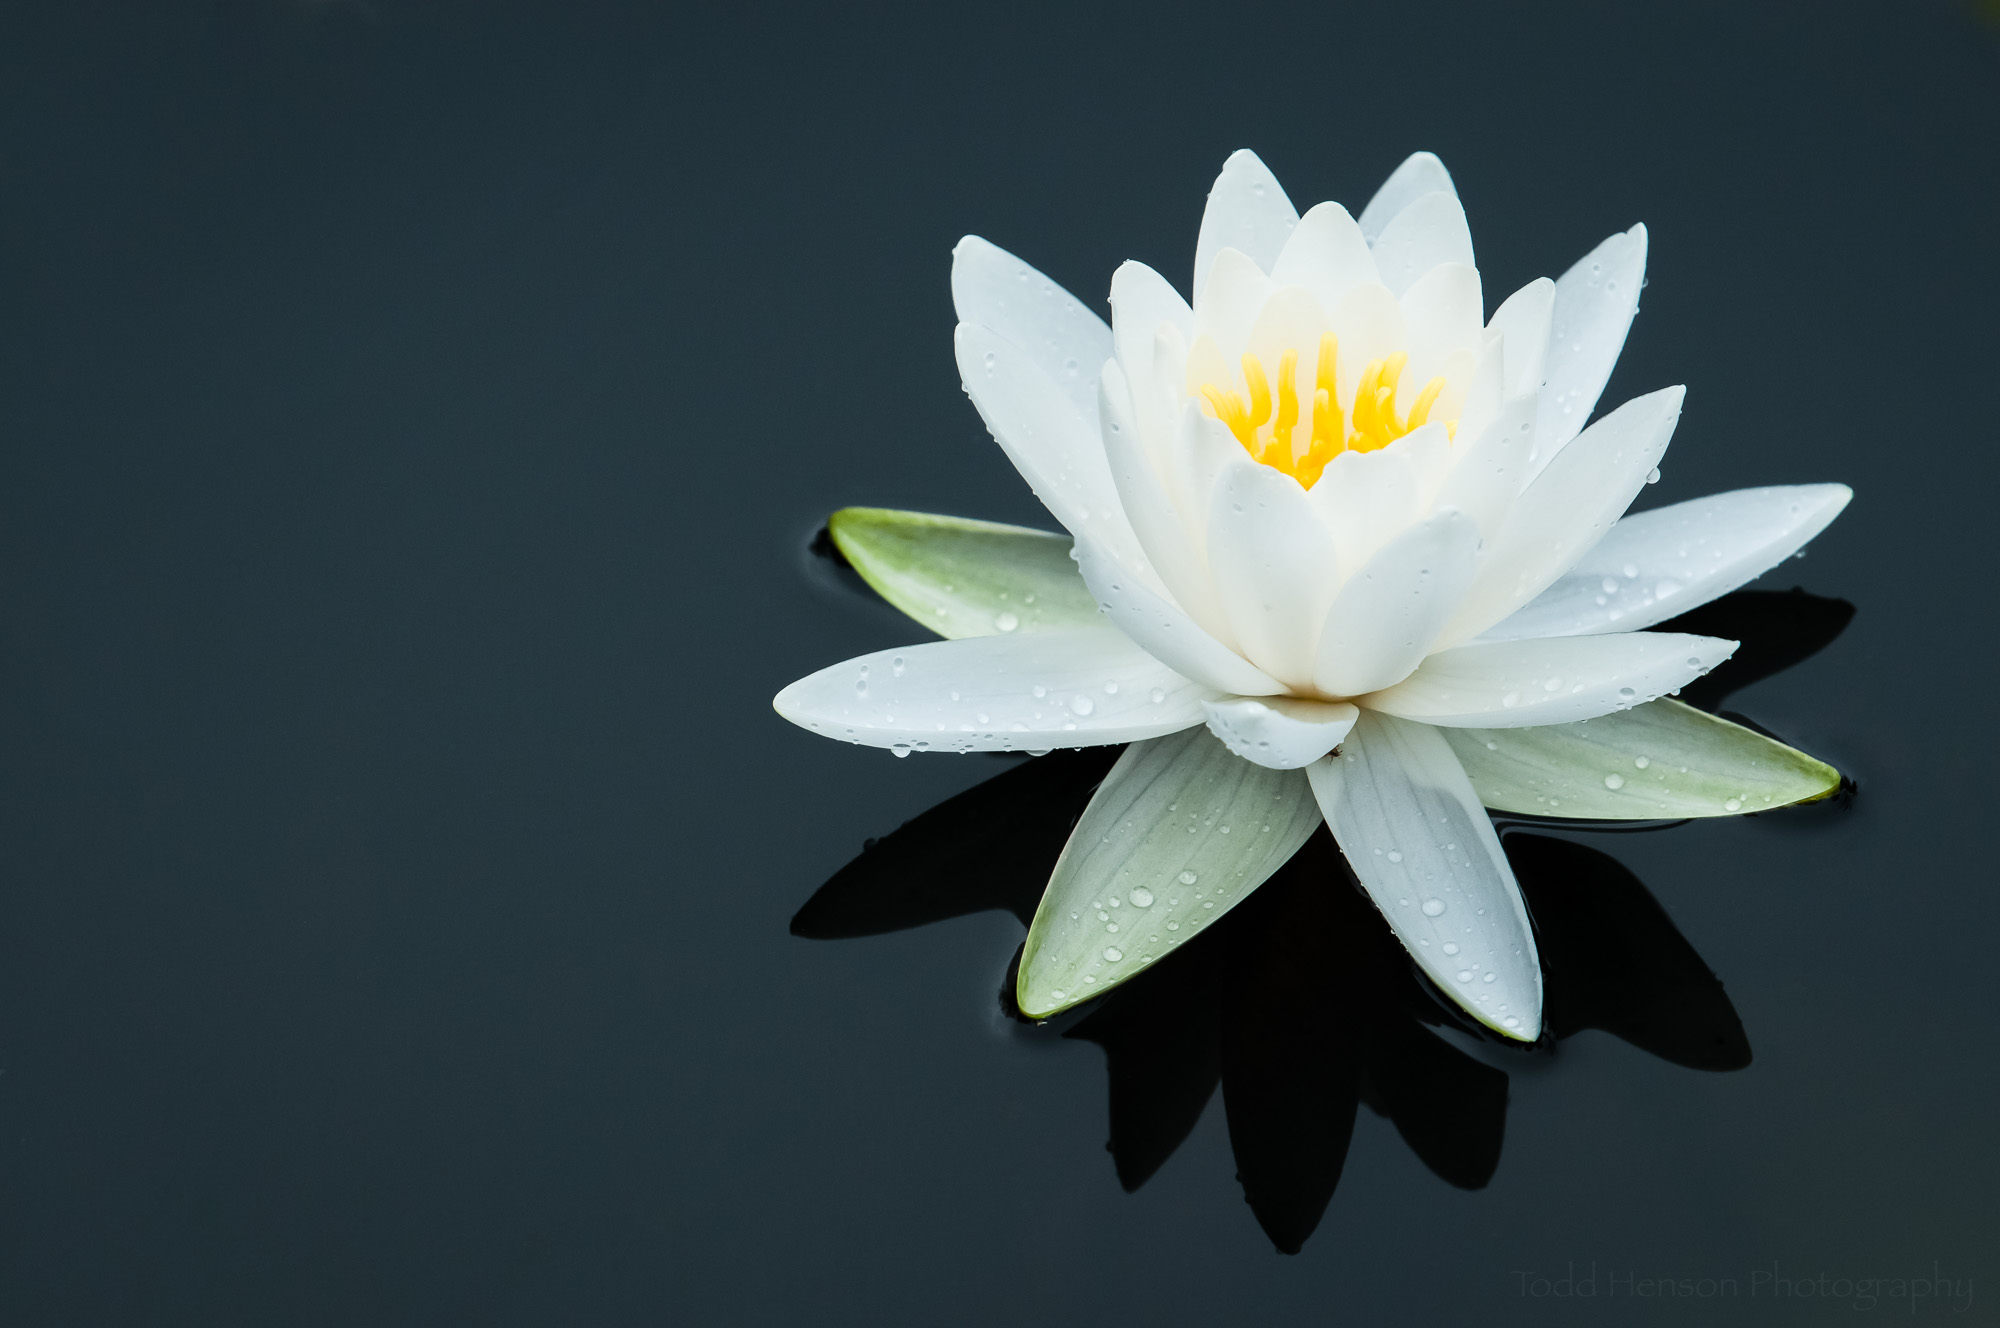 White Water Lily, the final edited photo.